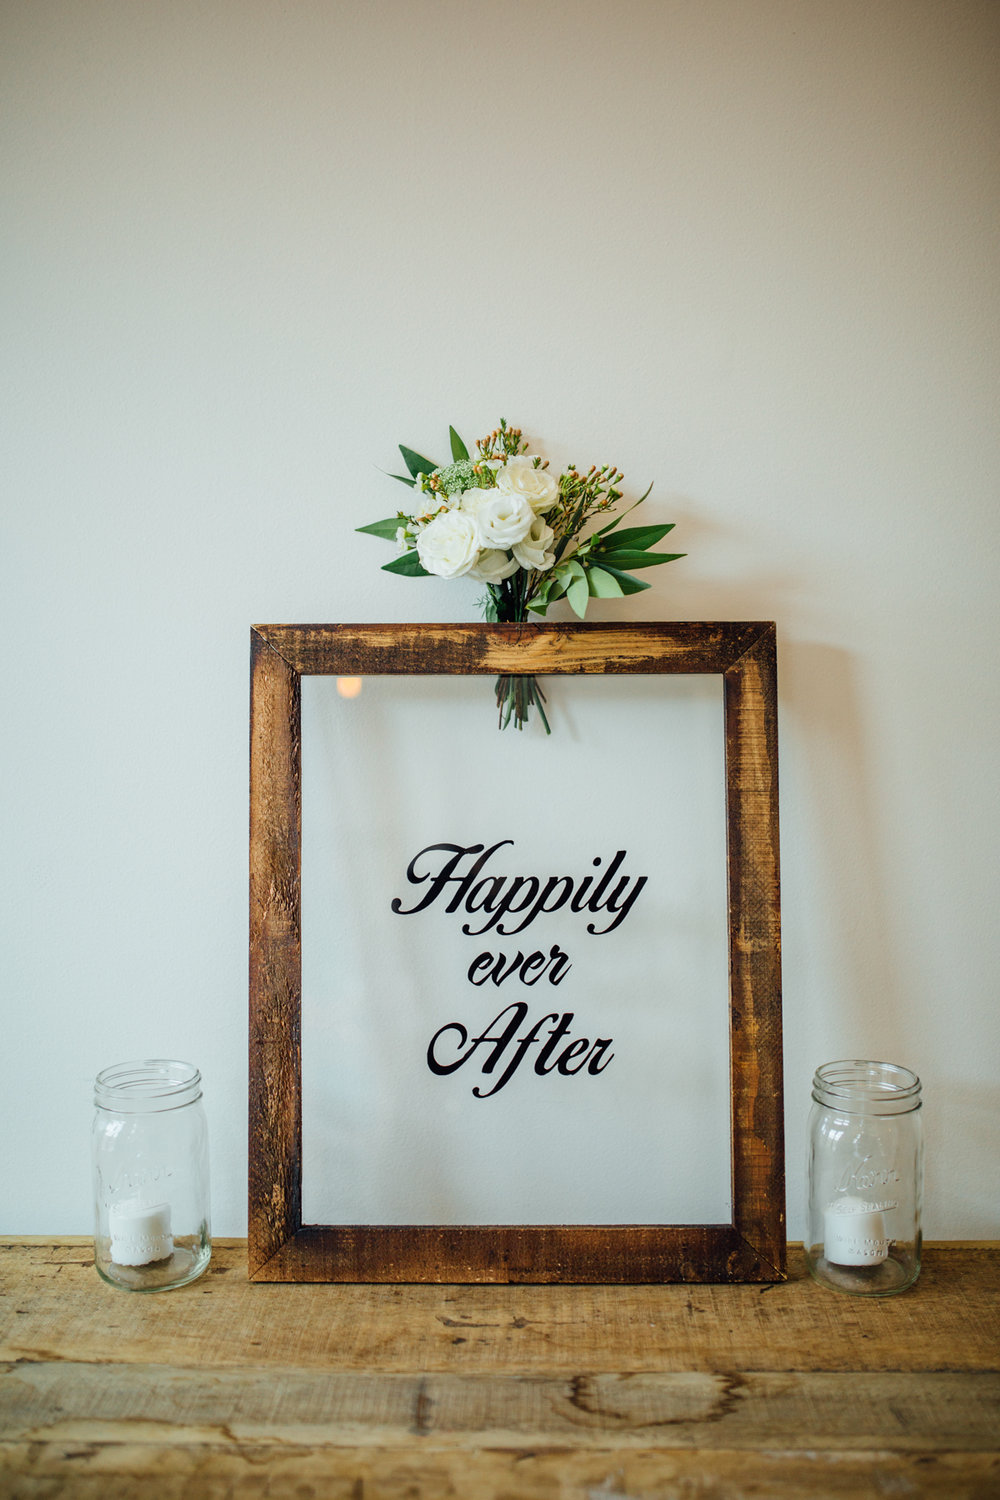 Happily Ever After Glass Sign - (1)